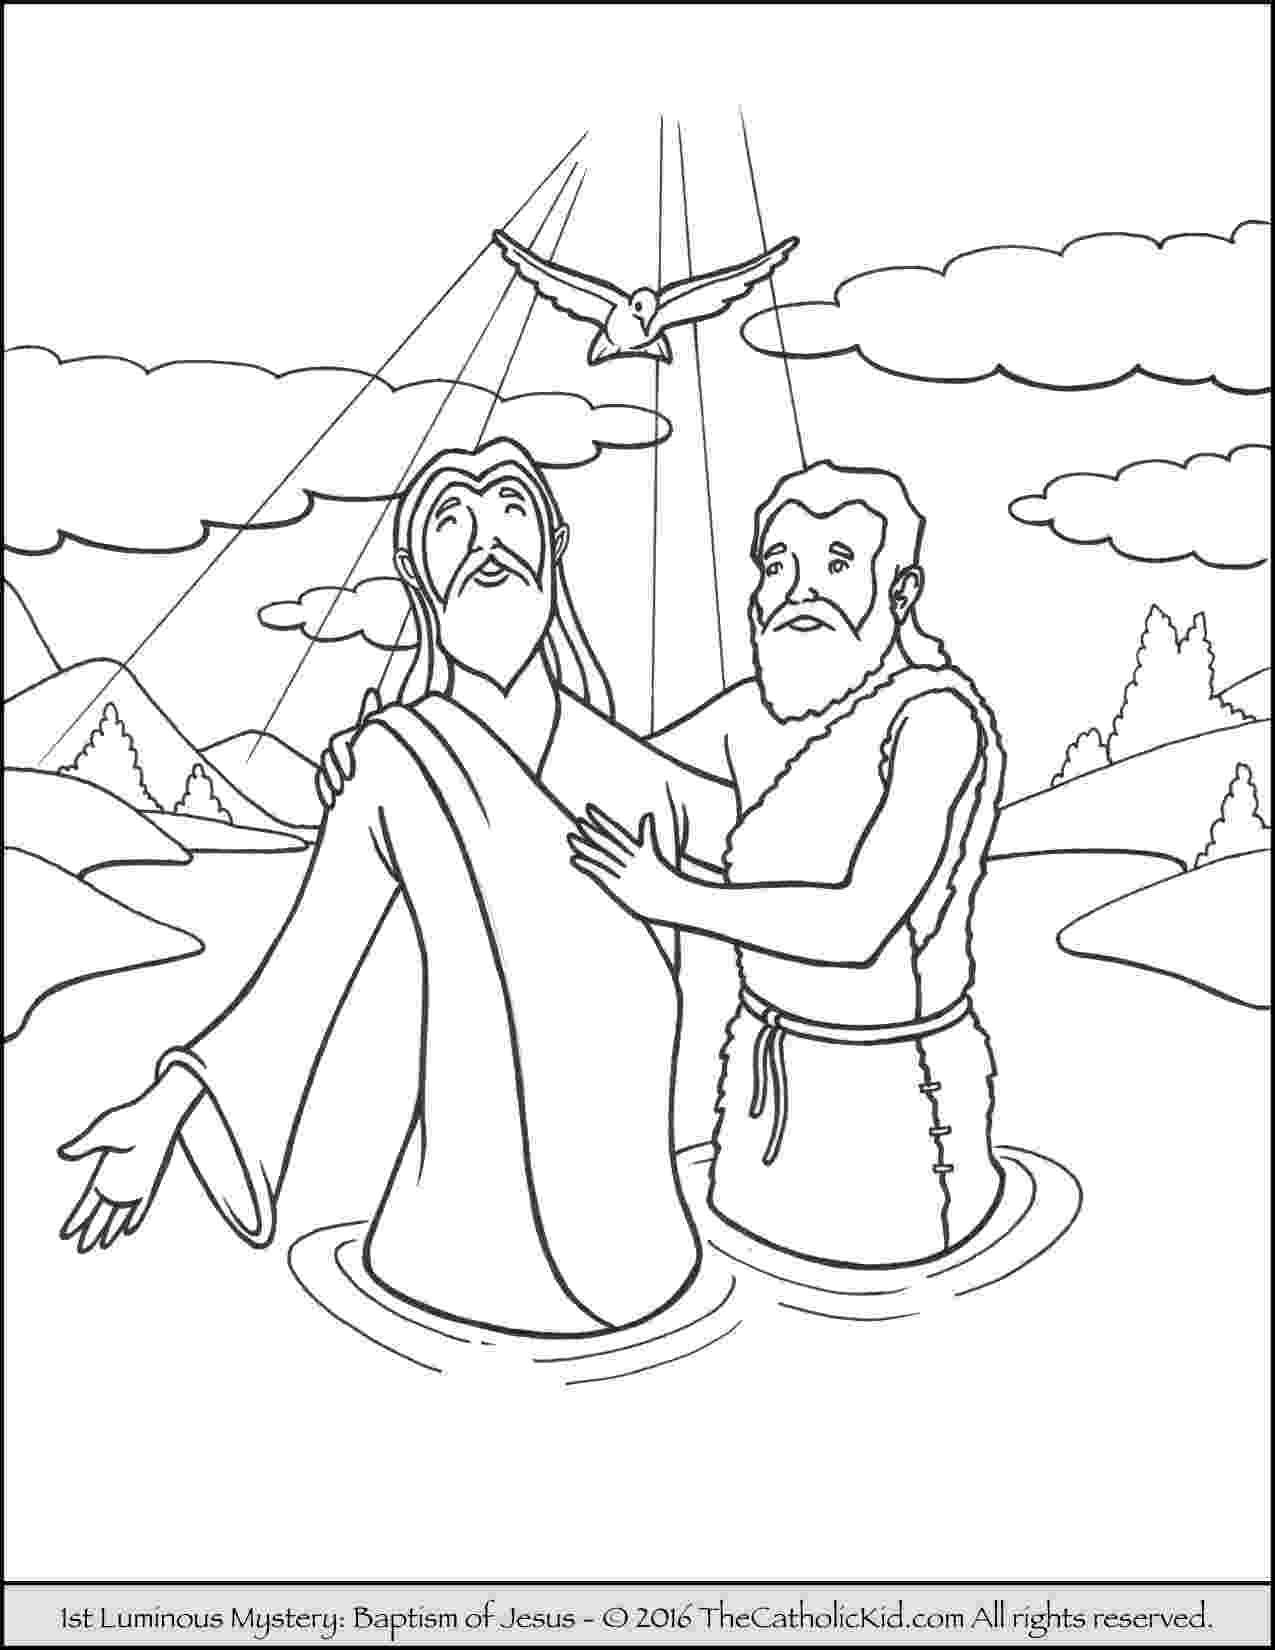 john the baptist coloring pages printable saint john the baptist coloring page catholic kids john coloring the printable john baptist pages